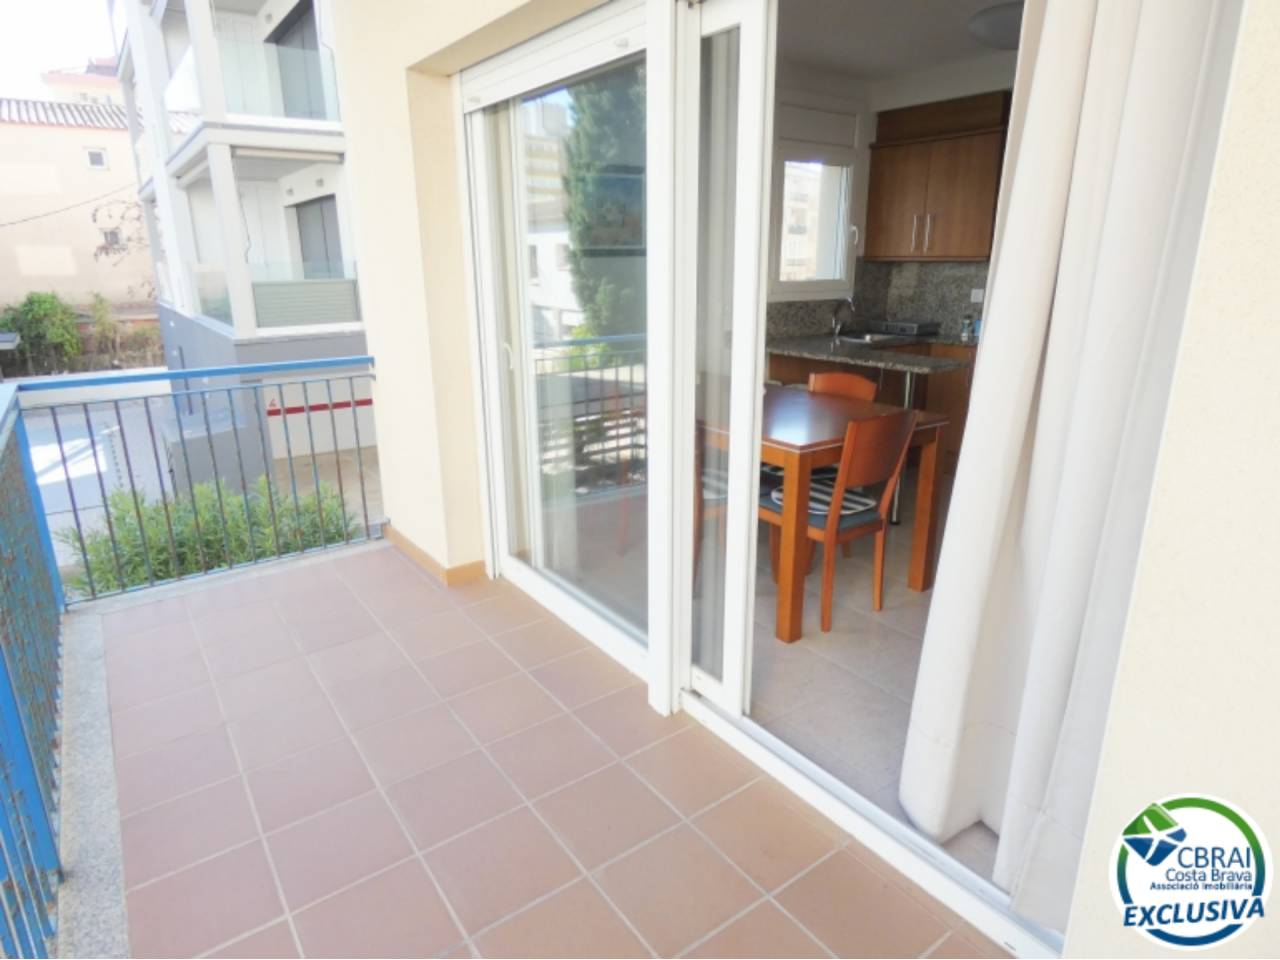 003006 - Flat for sale in Santa Margarida 100 meters from the beach